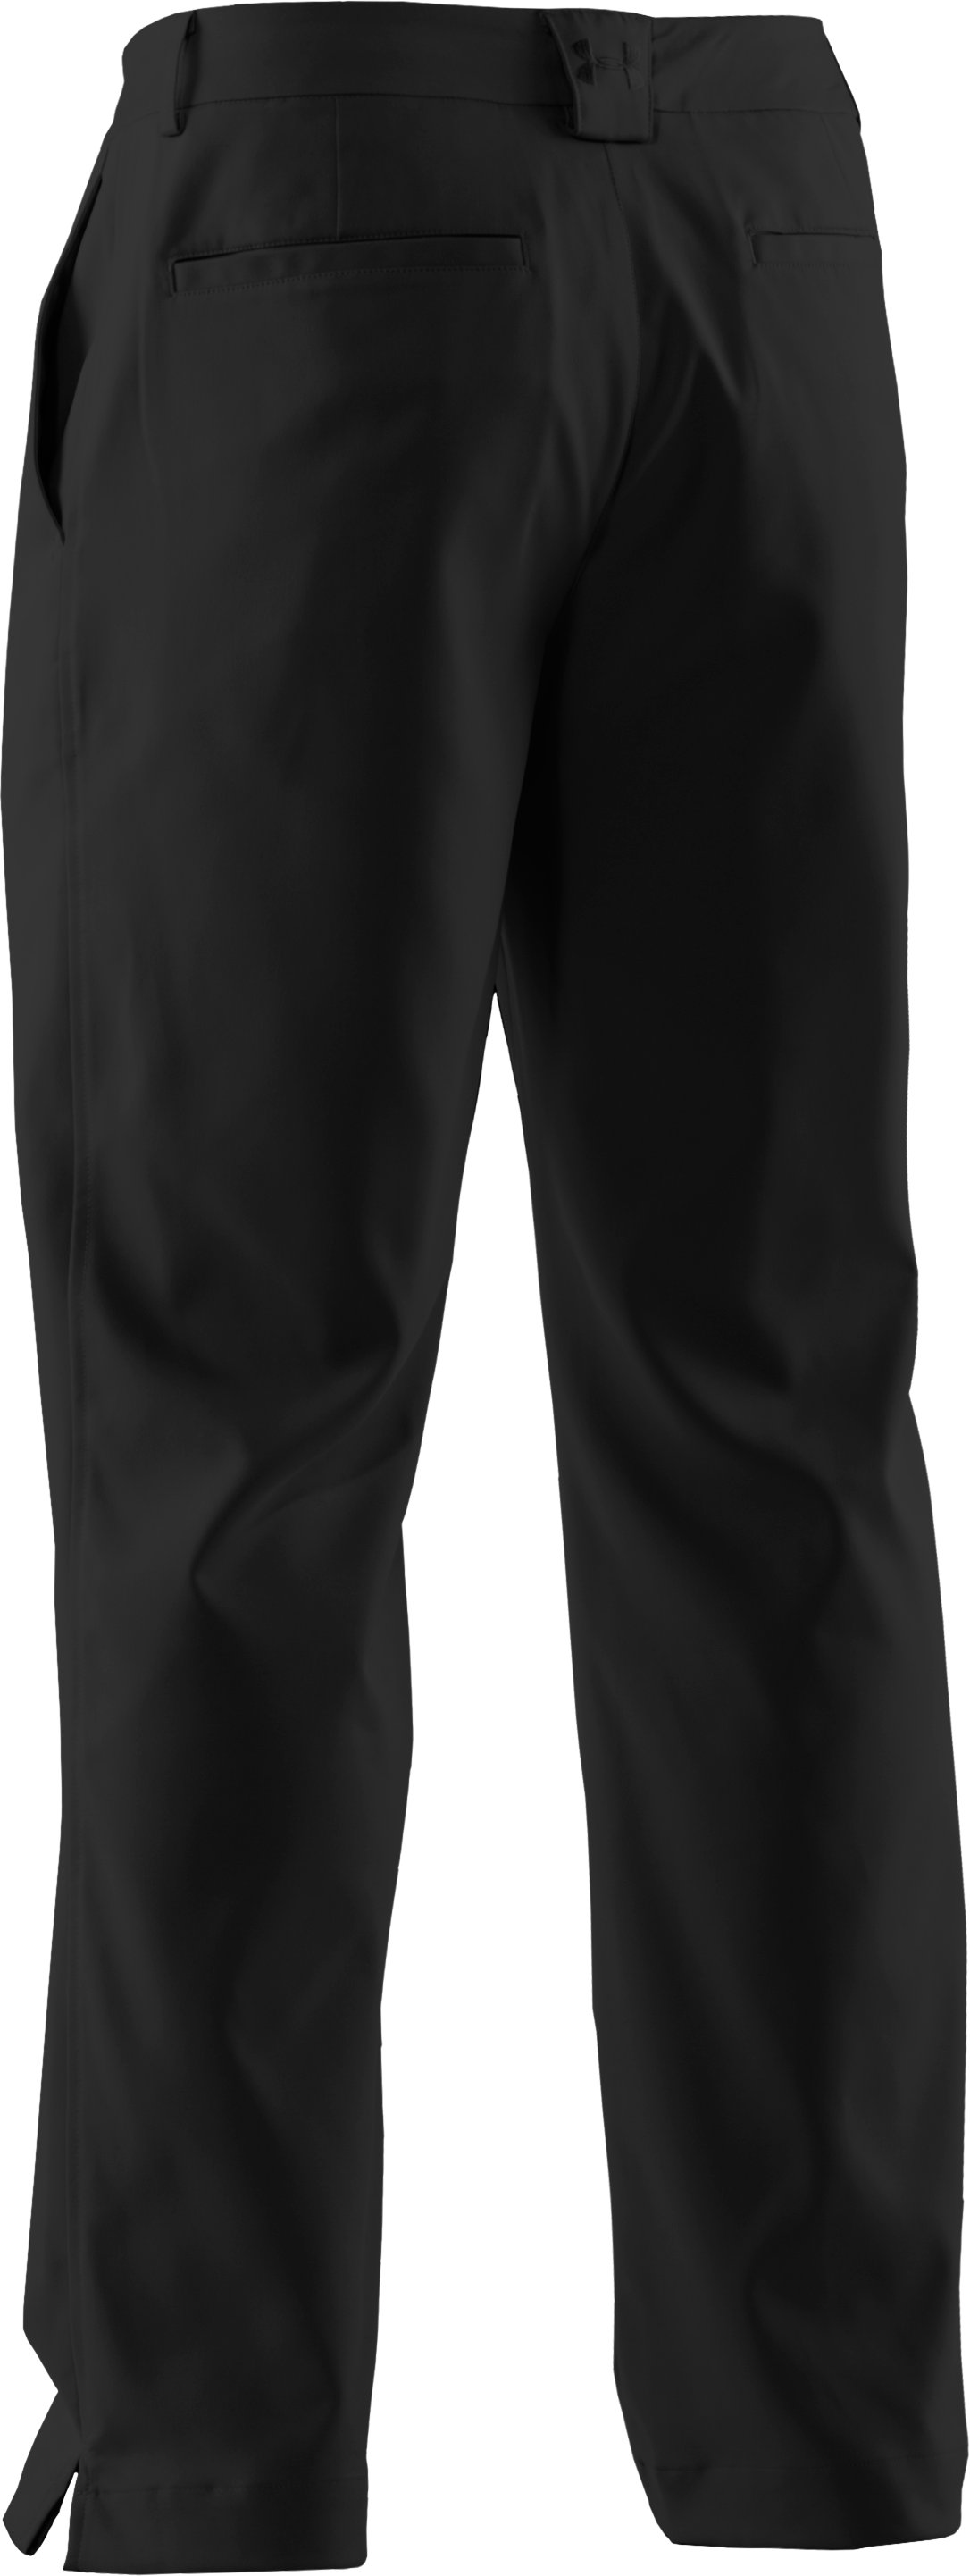 Men's UA Performance AllSeasonGear® Pants, Black